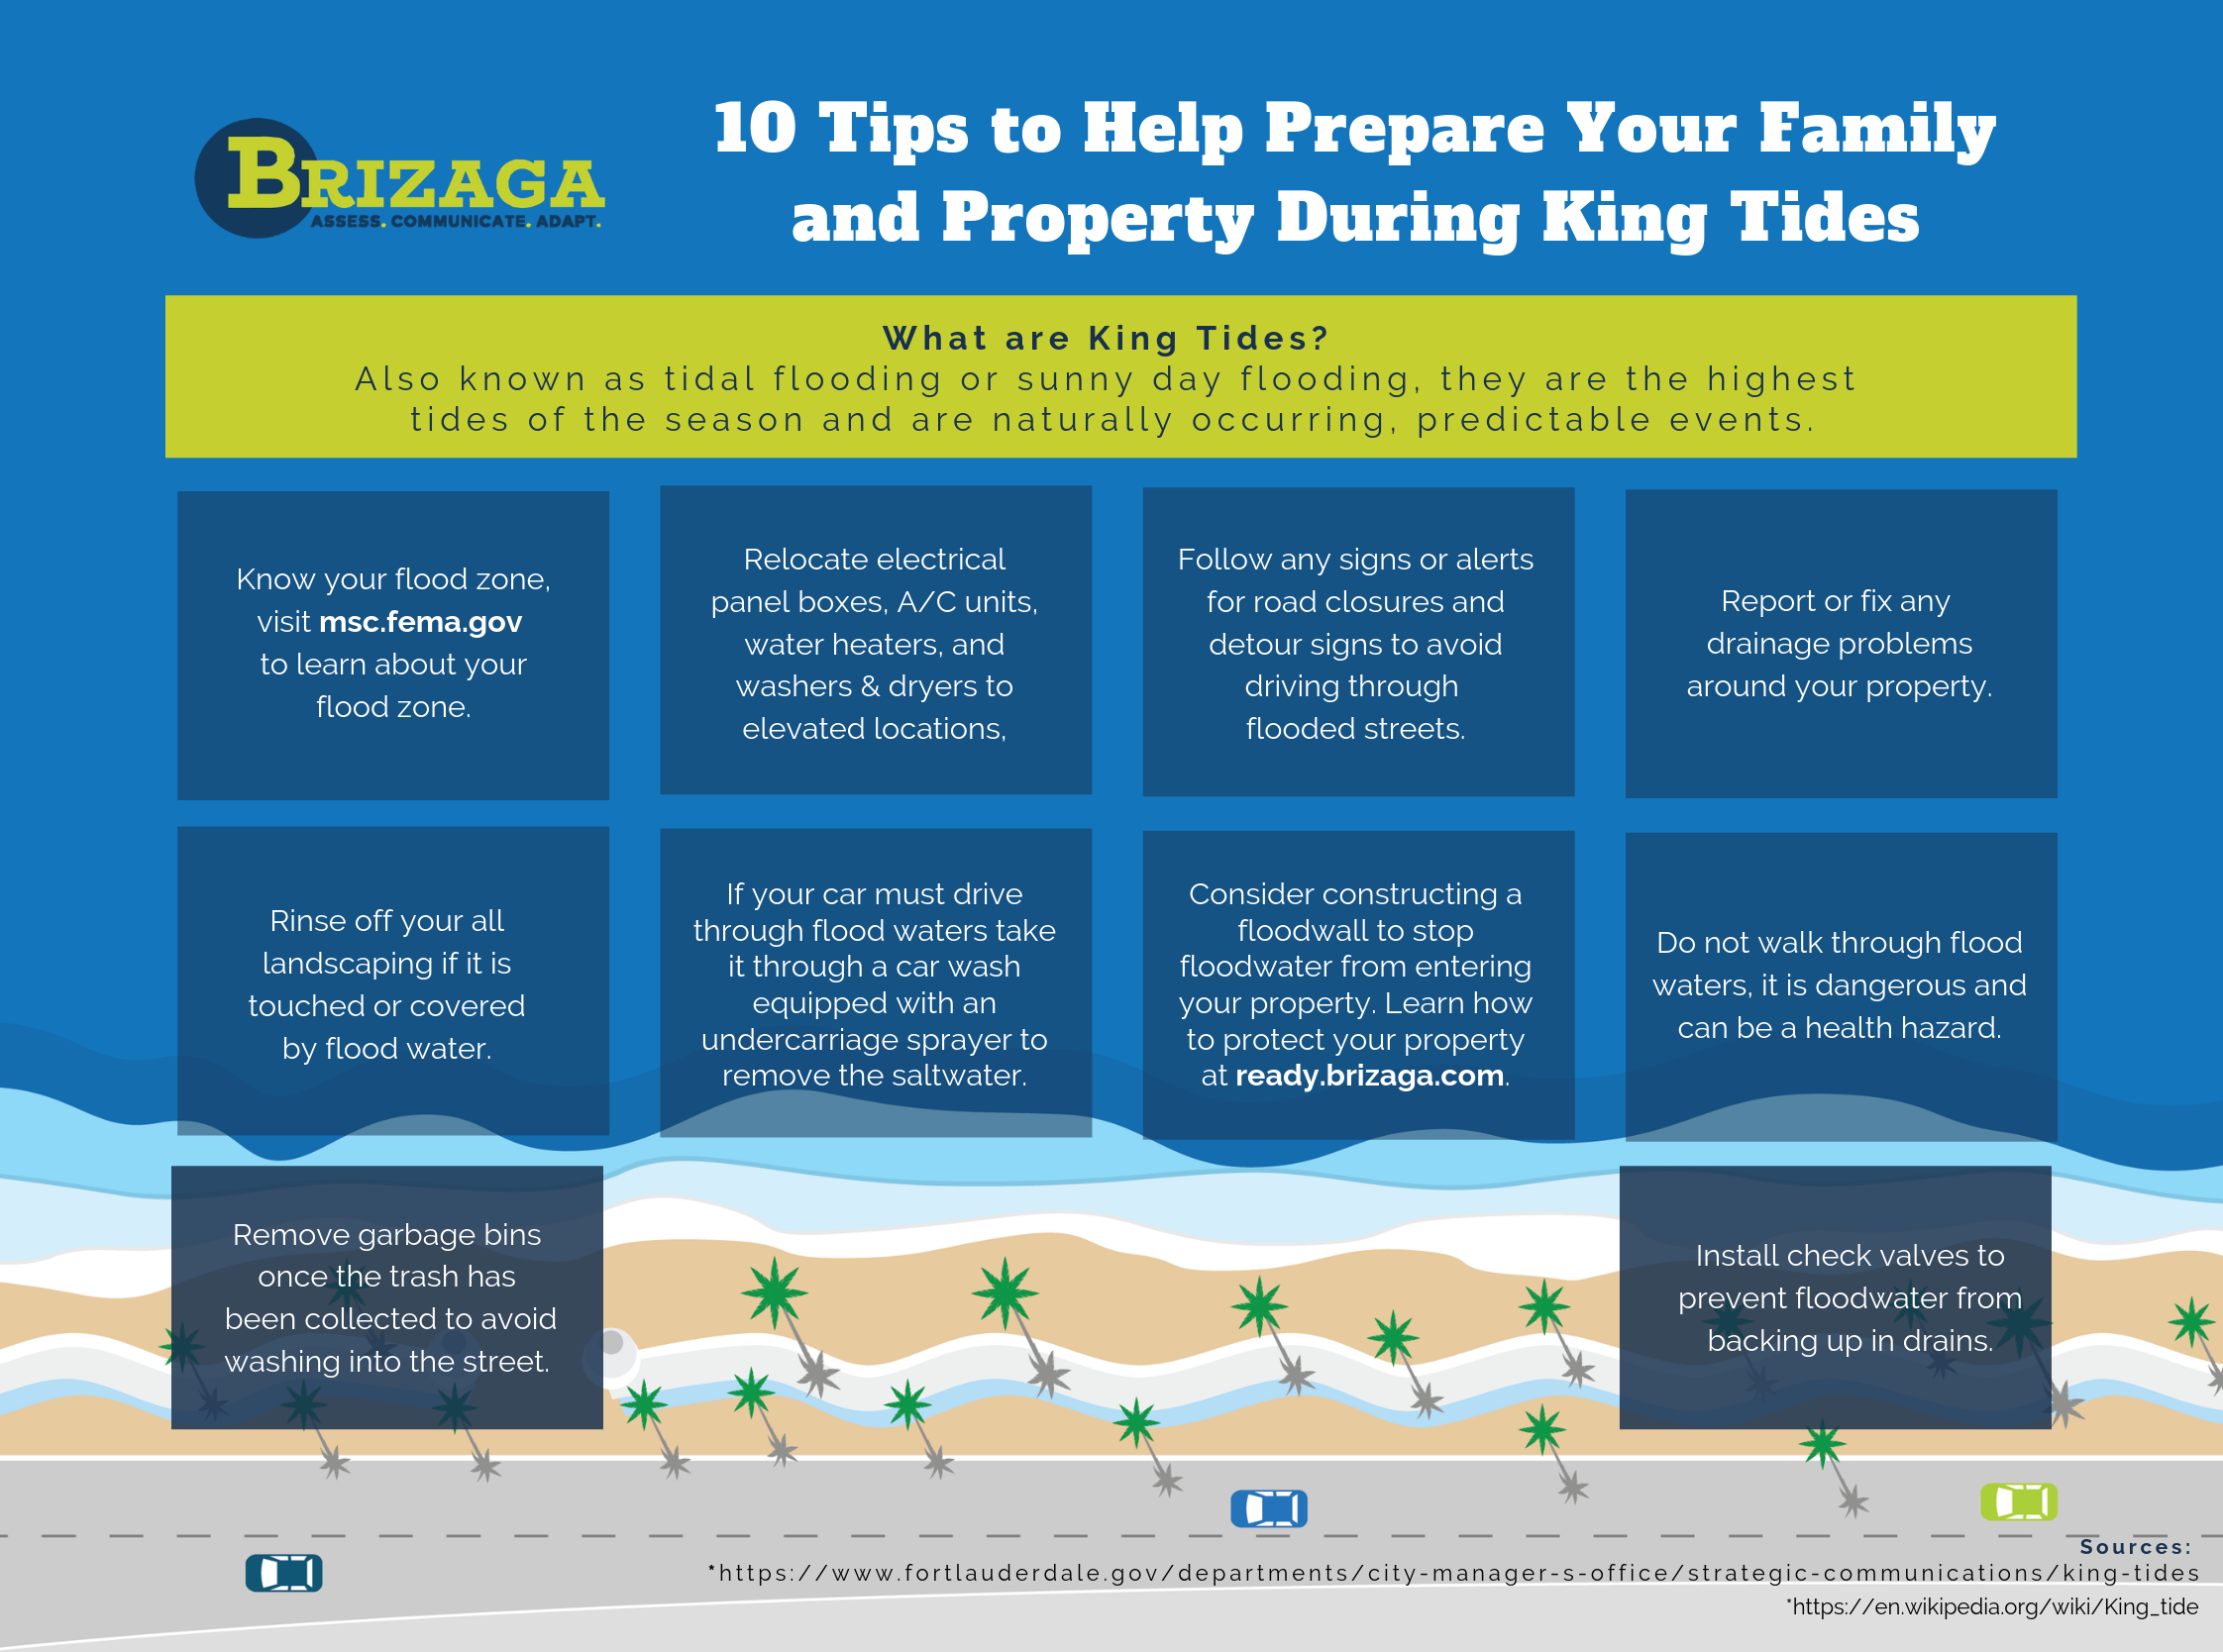 10 Tips to Help Prepare Your Family and Property During King